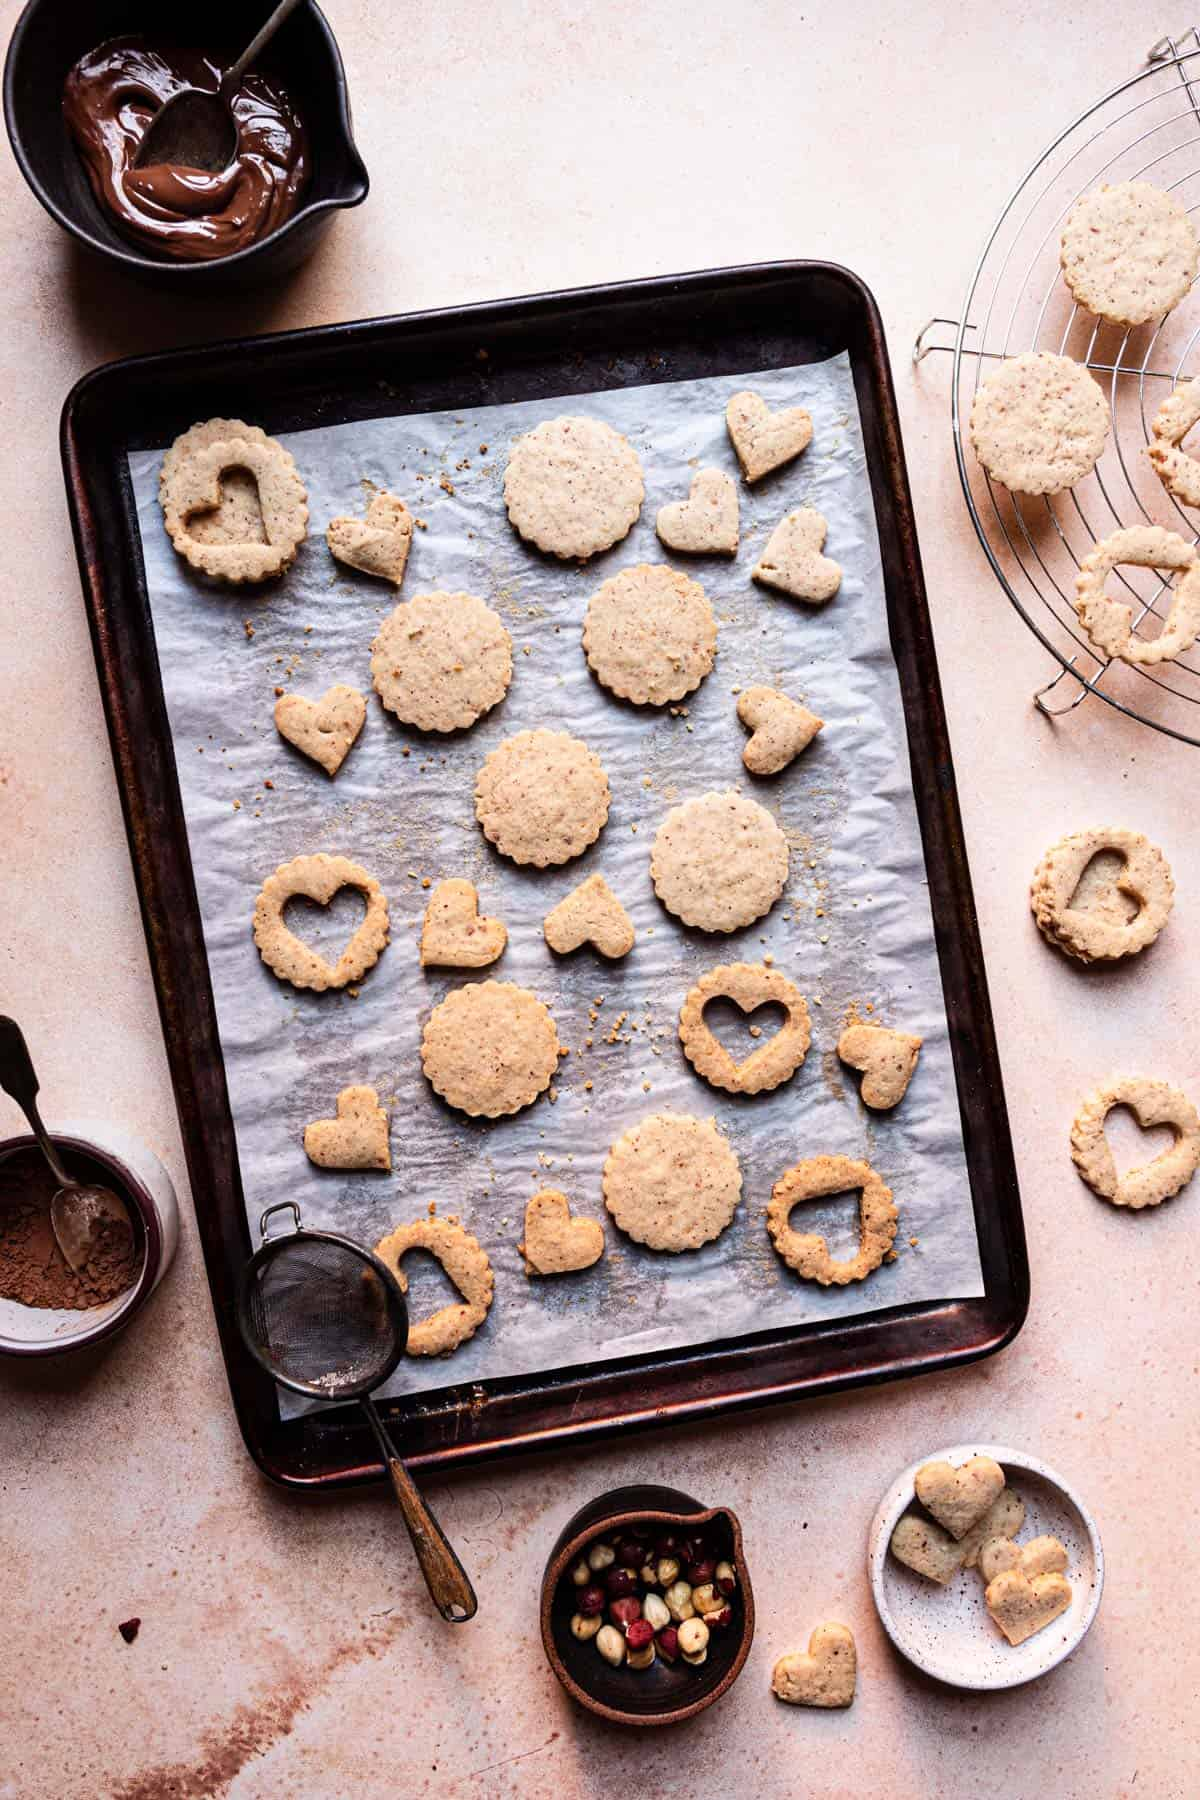 Hazelnut shortbread cookies